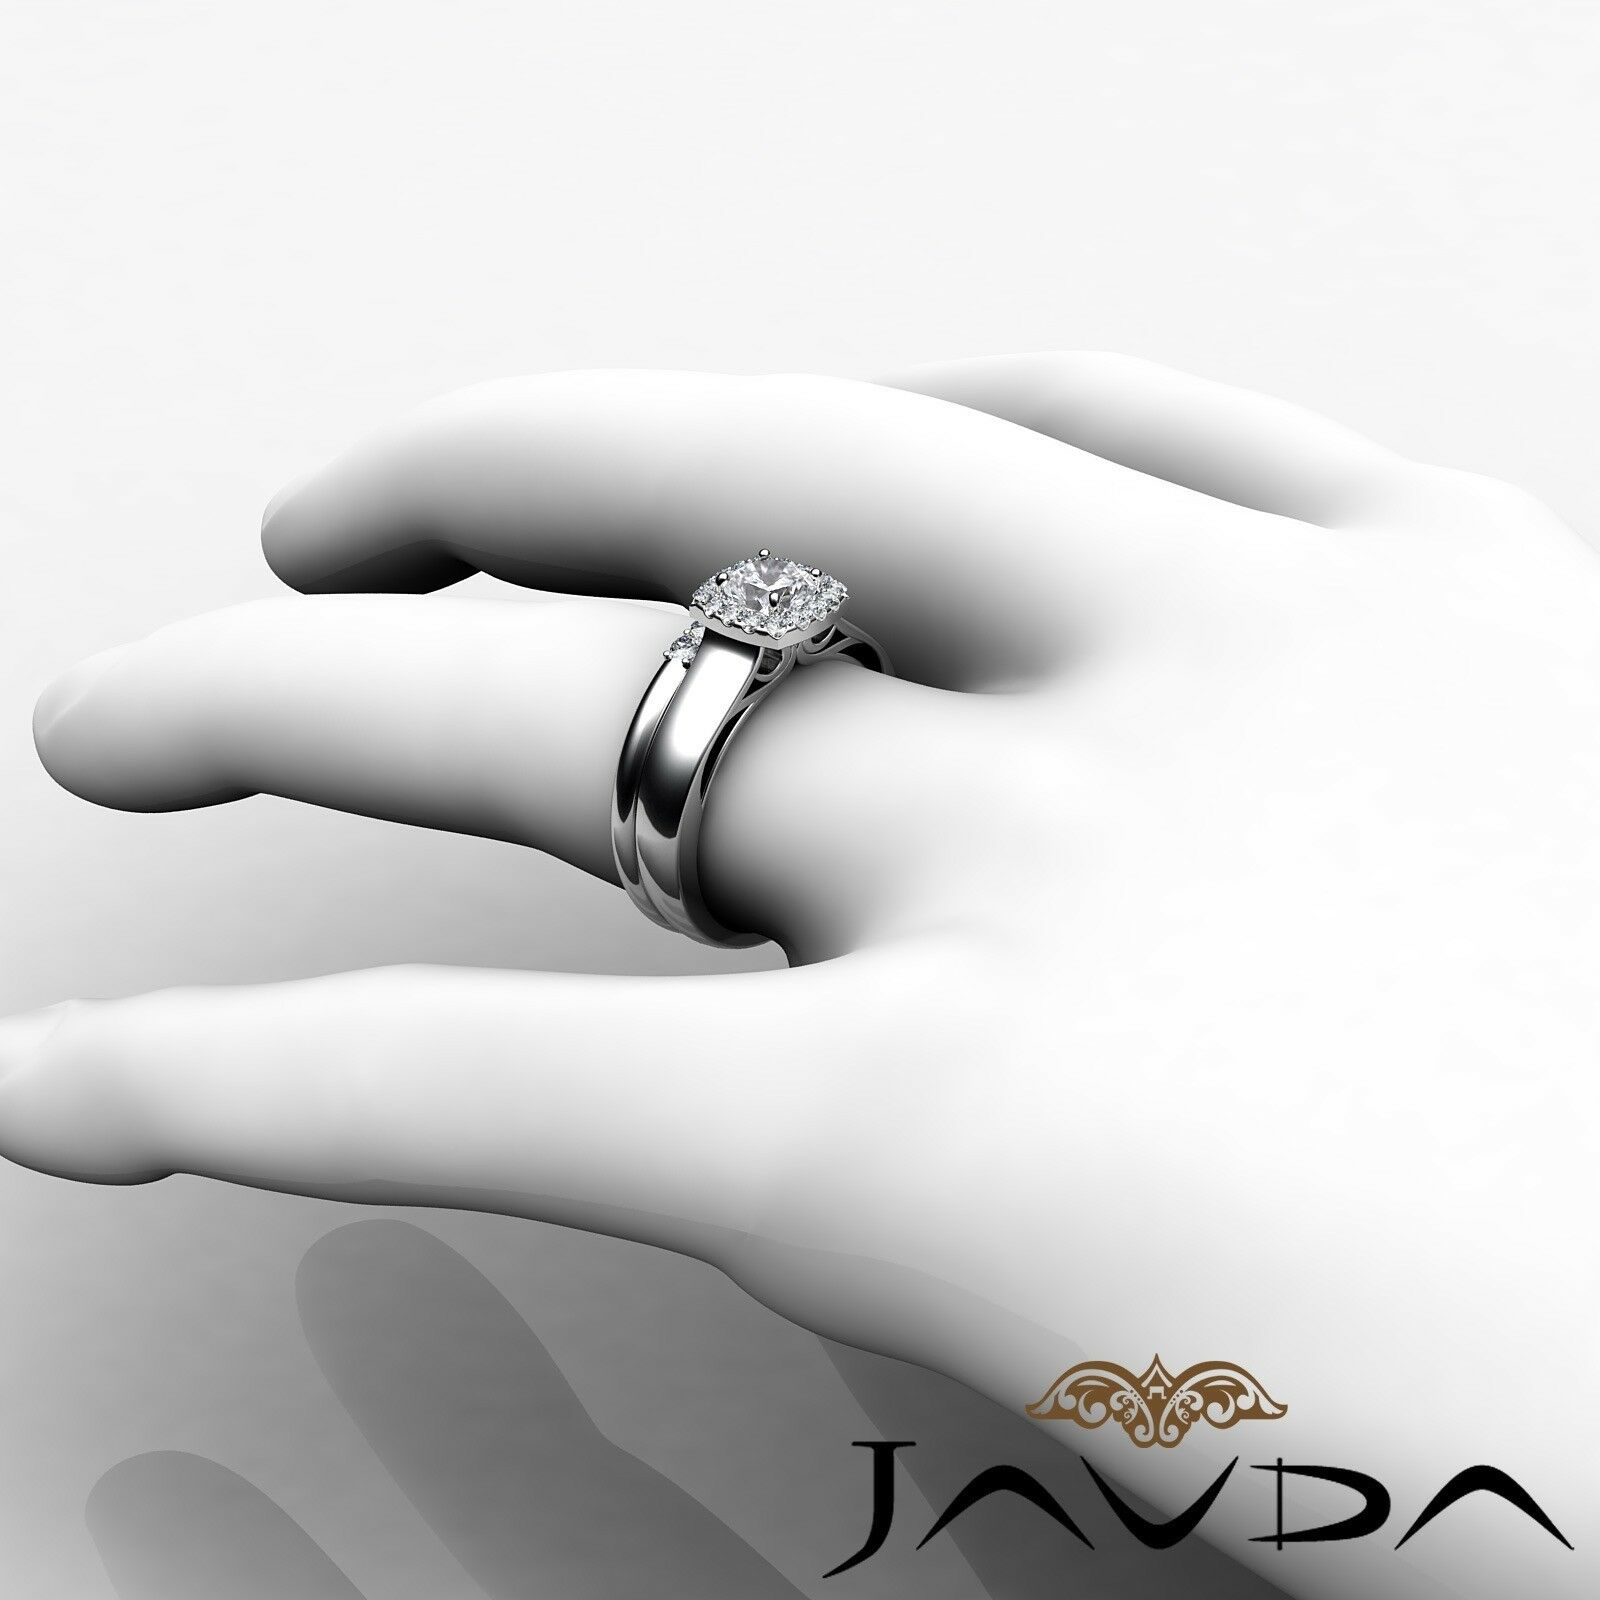 1.04ctw Solitaire Halo Bridal Cushion Diamond Engagement Ring GIA H-VS2 W Gold 5